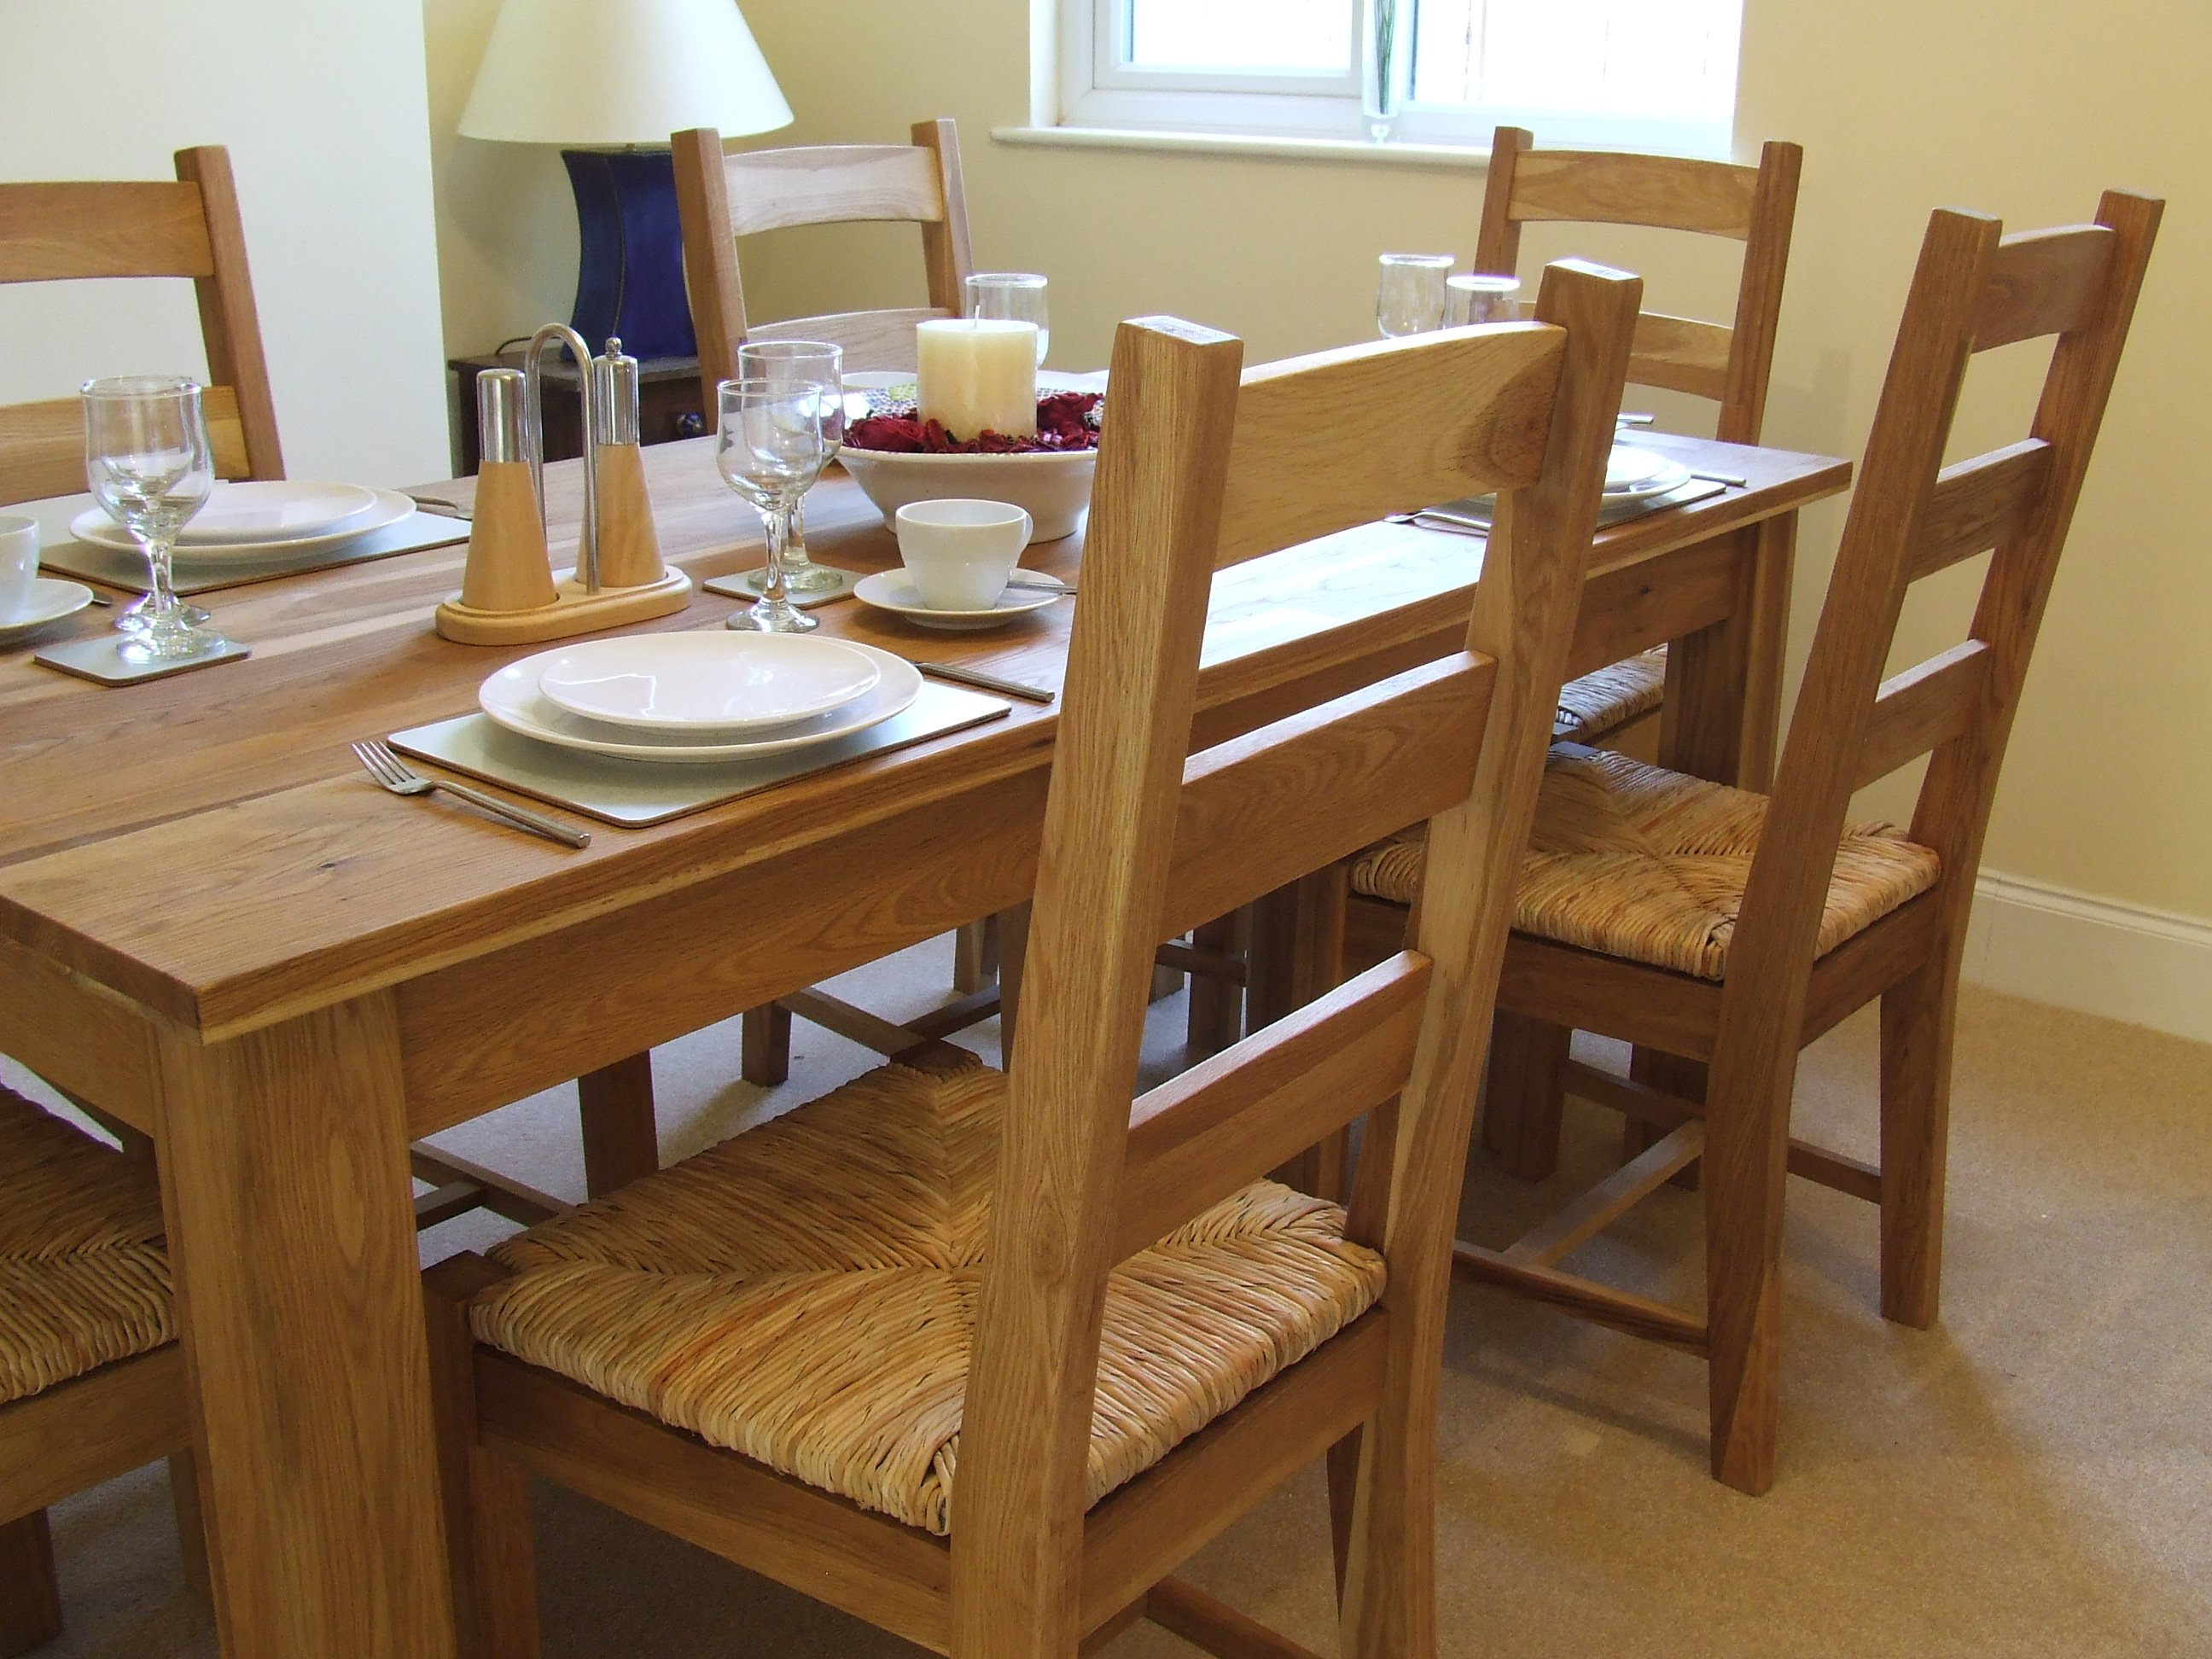 Oak Solid Oak Dining Table Set 180cm Rush Pad Dining  : oak solid oak dining table set 180cm rush pad from comparestoreprices.co.uk size 2592 x 1944 jpeg 698kB